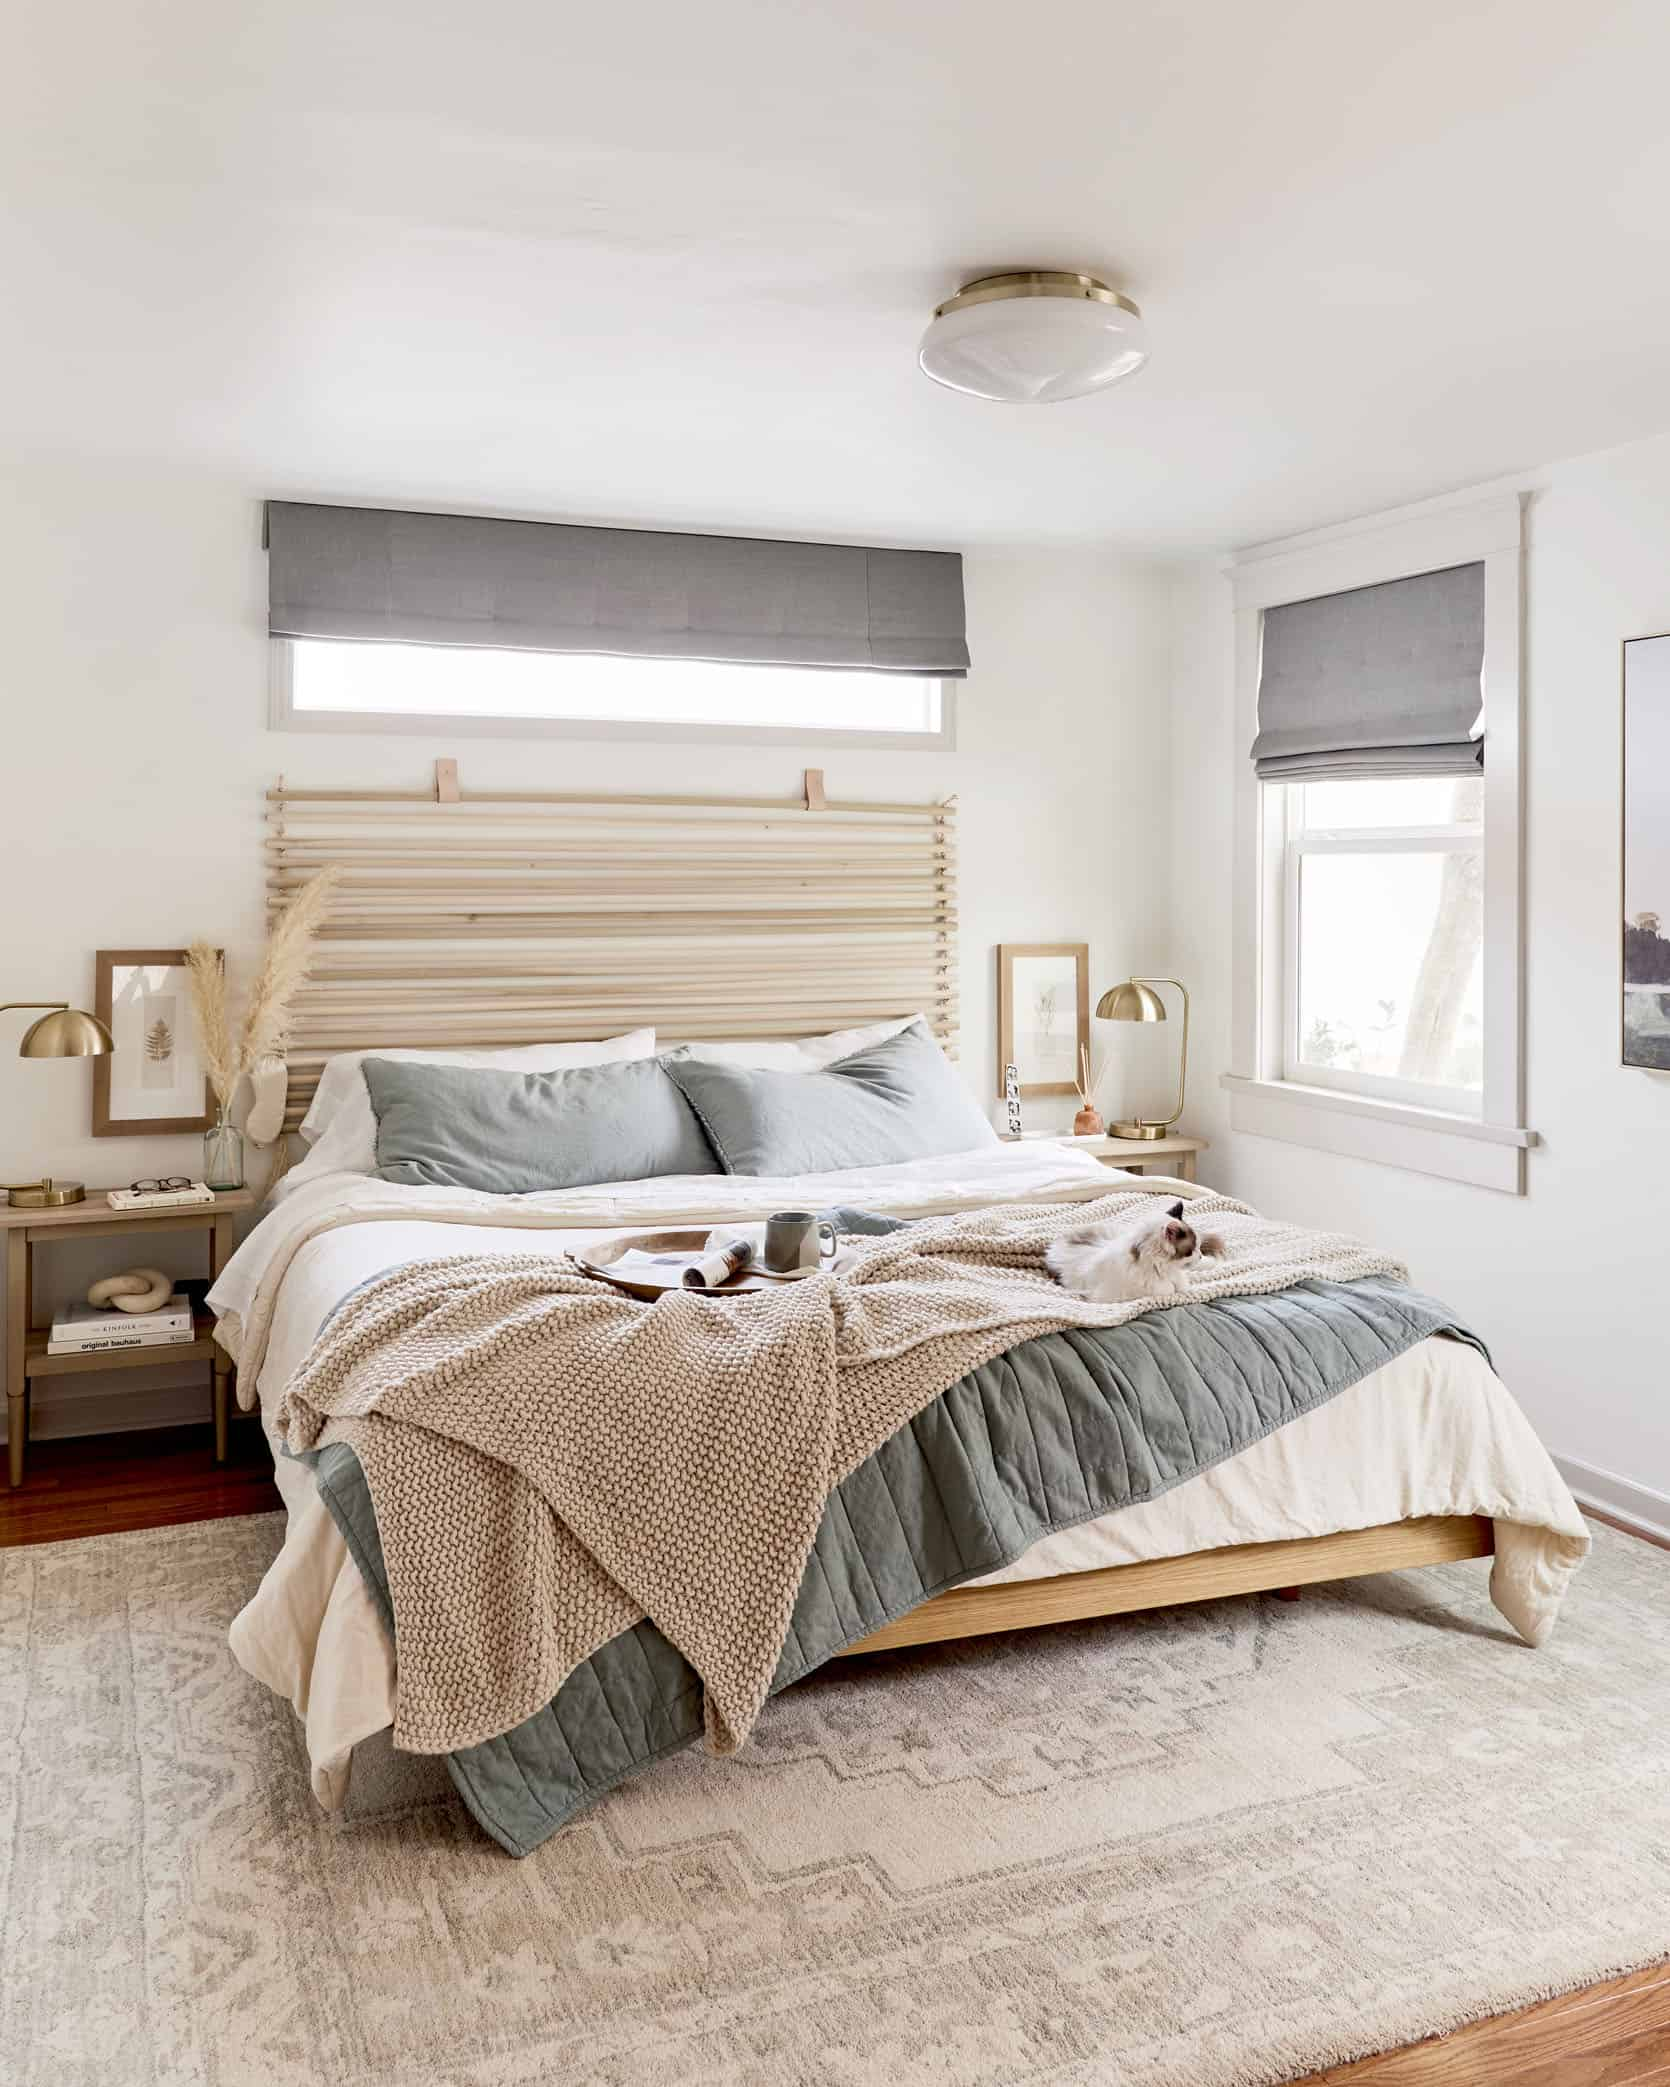 neutral bedroom design with light blush and blue bedding and oak timber bed